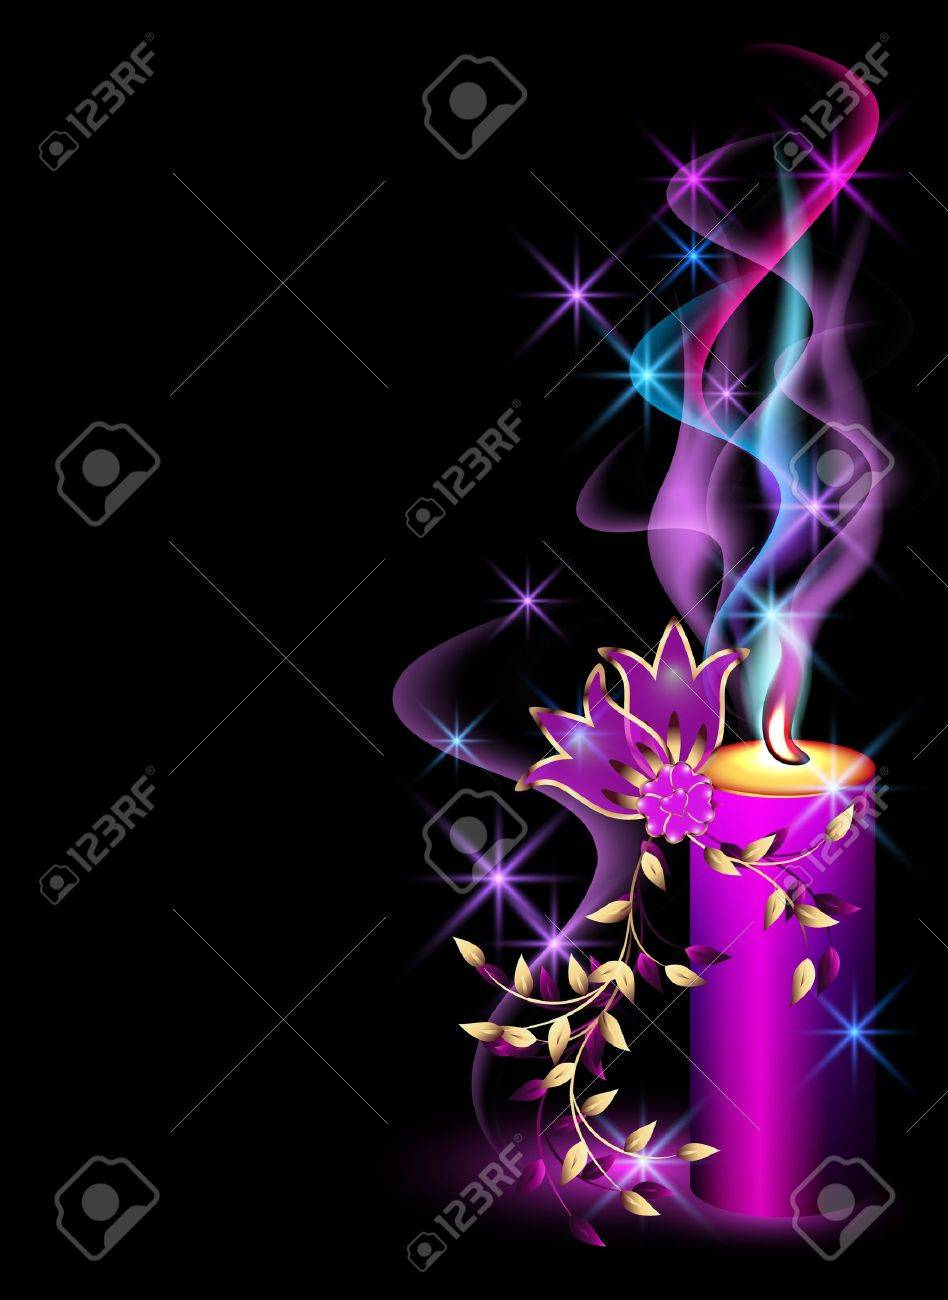 Burning candle, smoke, stars and flowers Stock Vector - 9859494